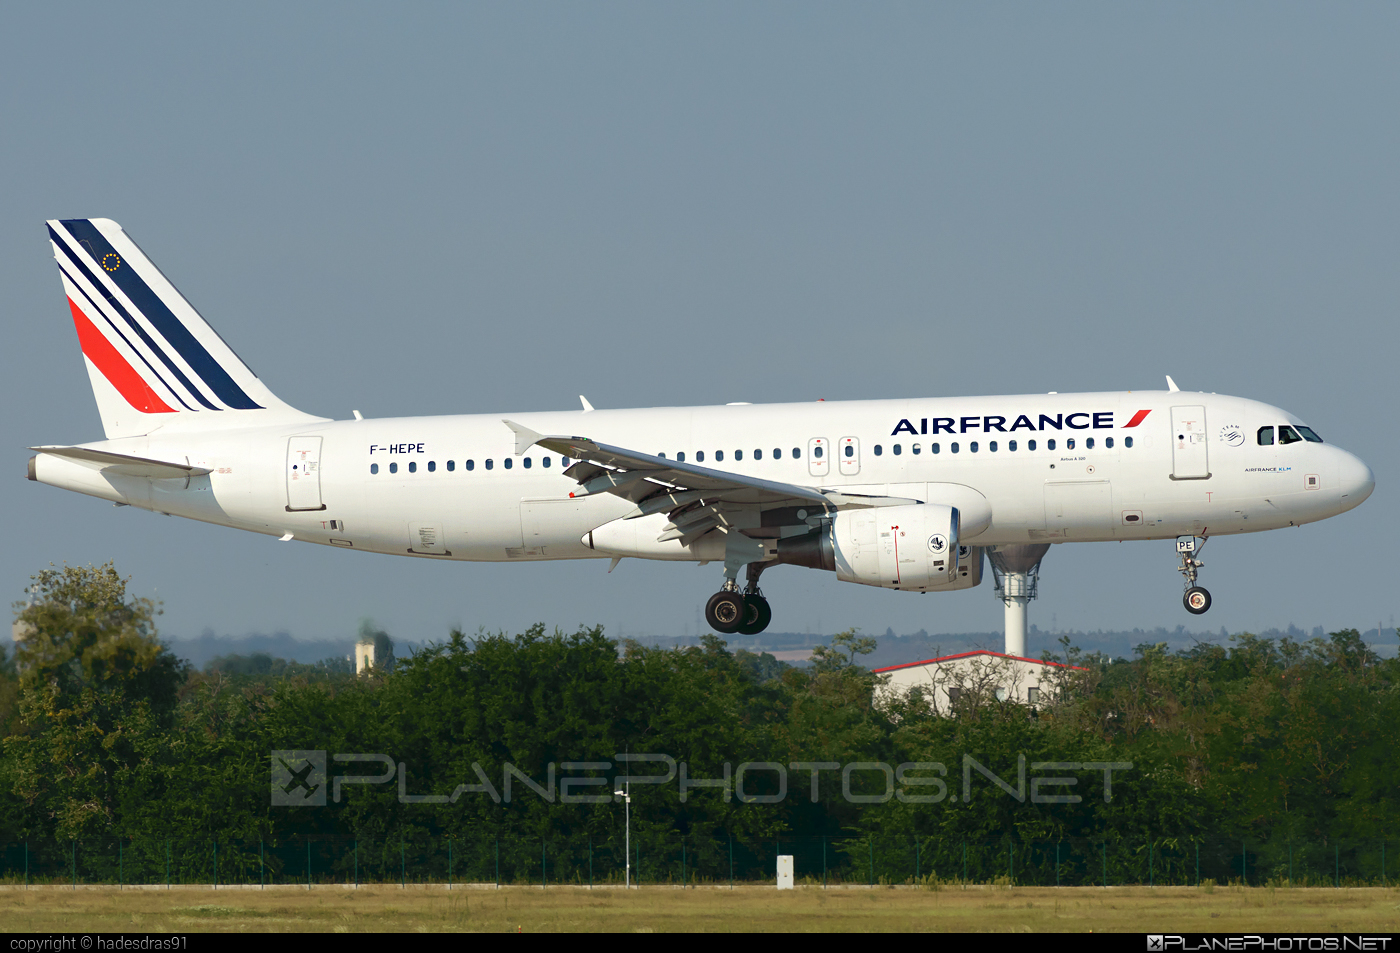 Airbus A320-214 - F-HEPE operated by Air France #a320 #a320family #airbus #airbus320 #airfrance